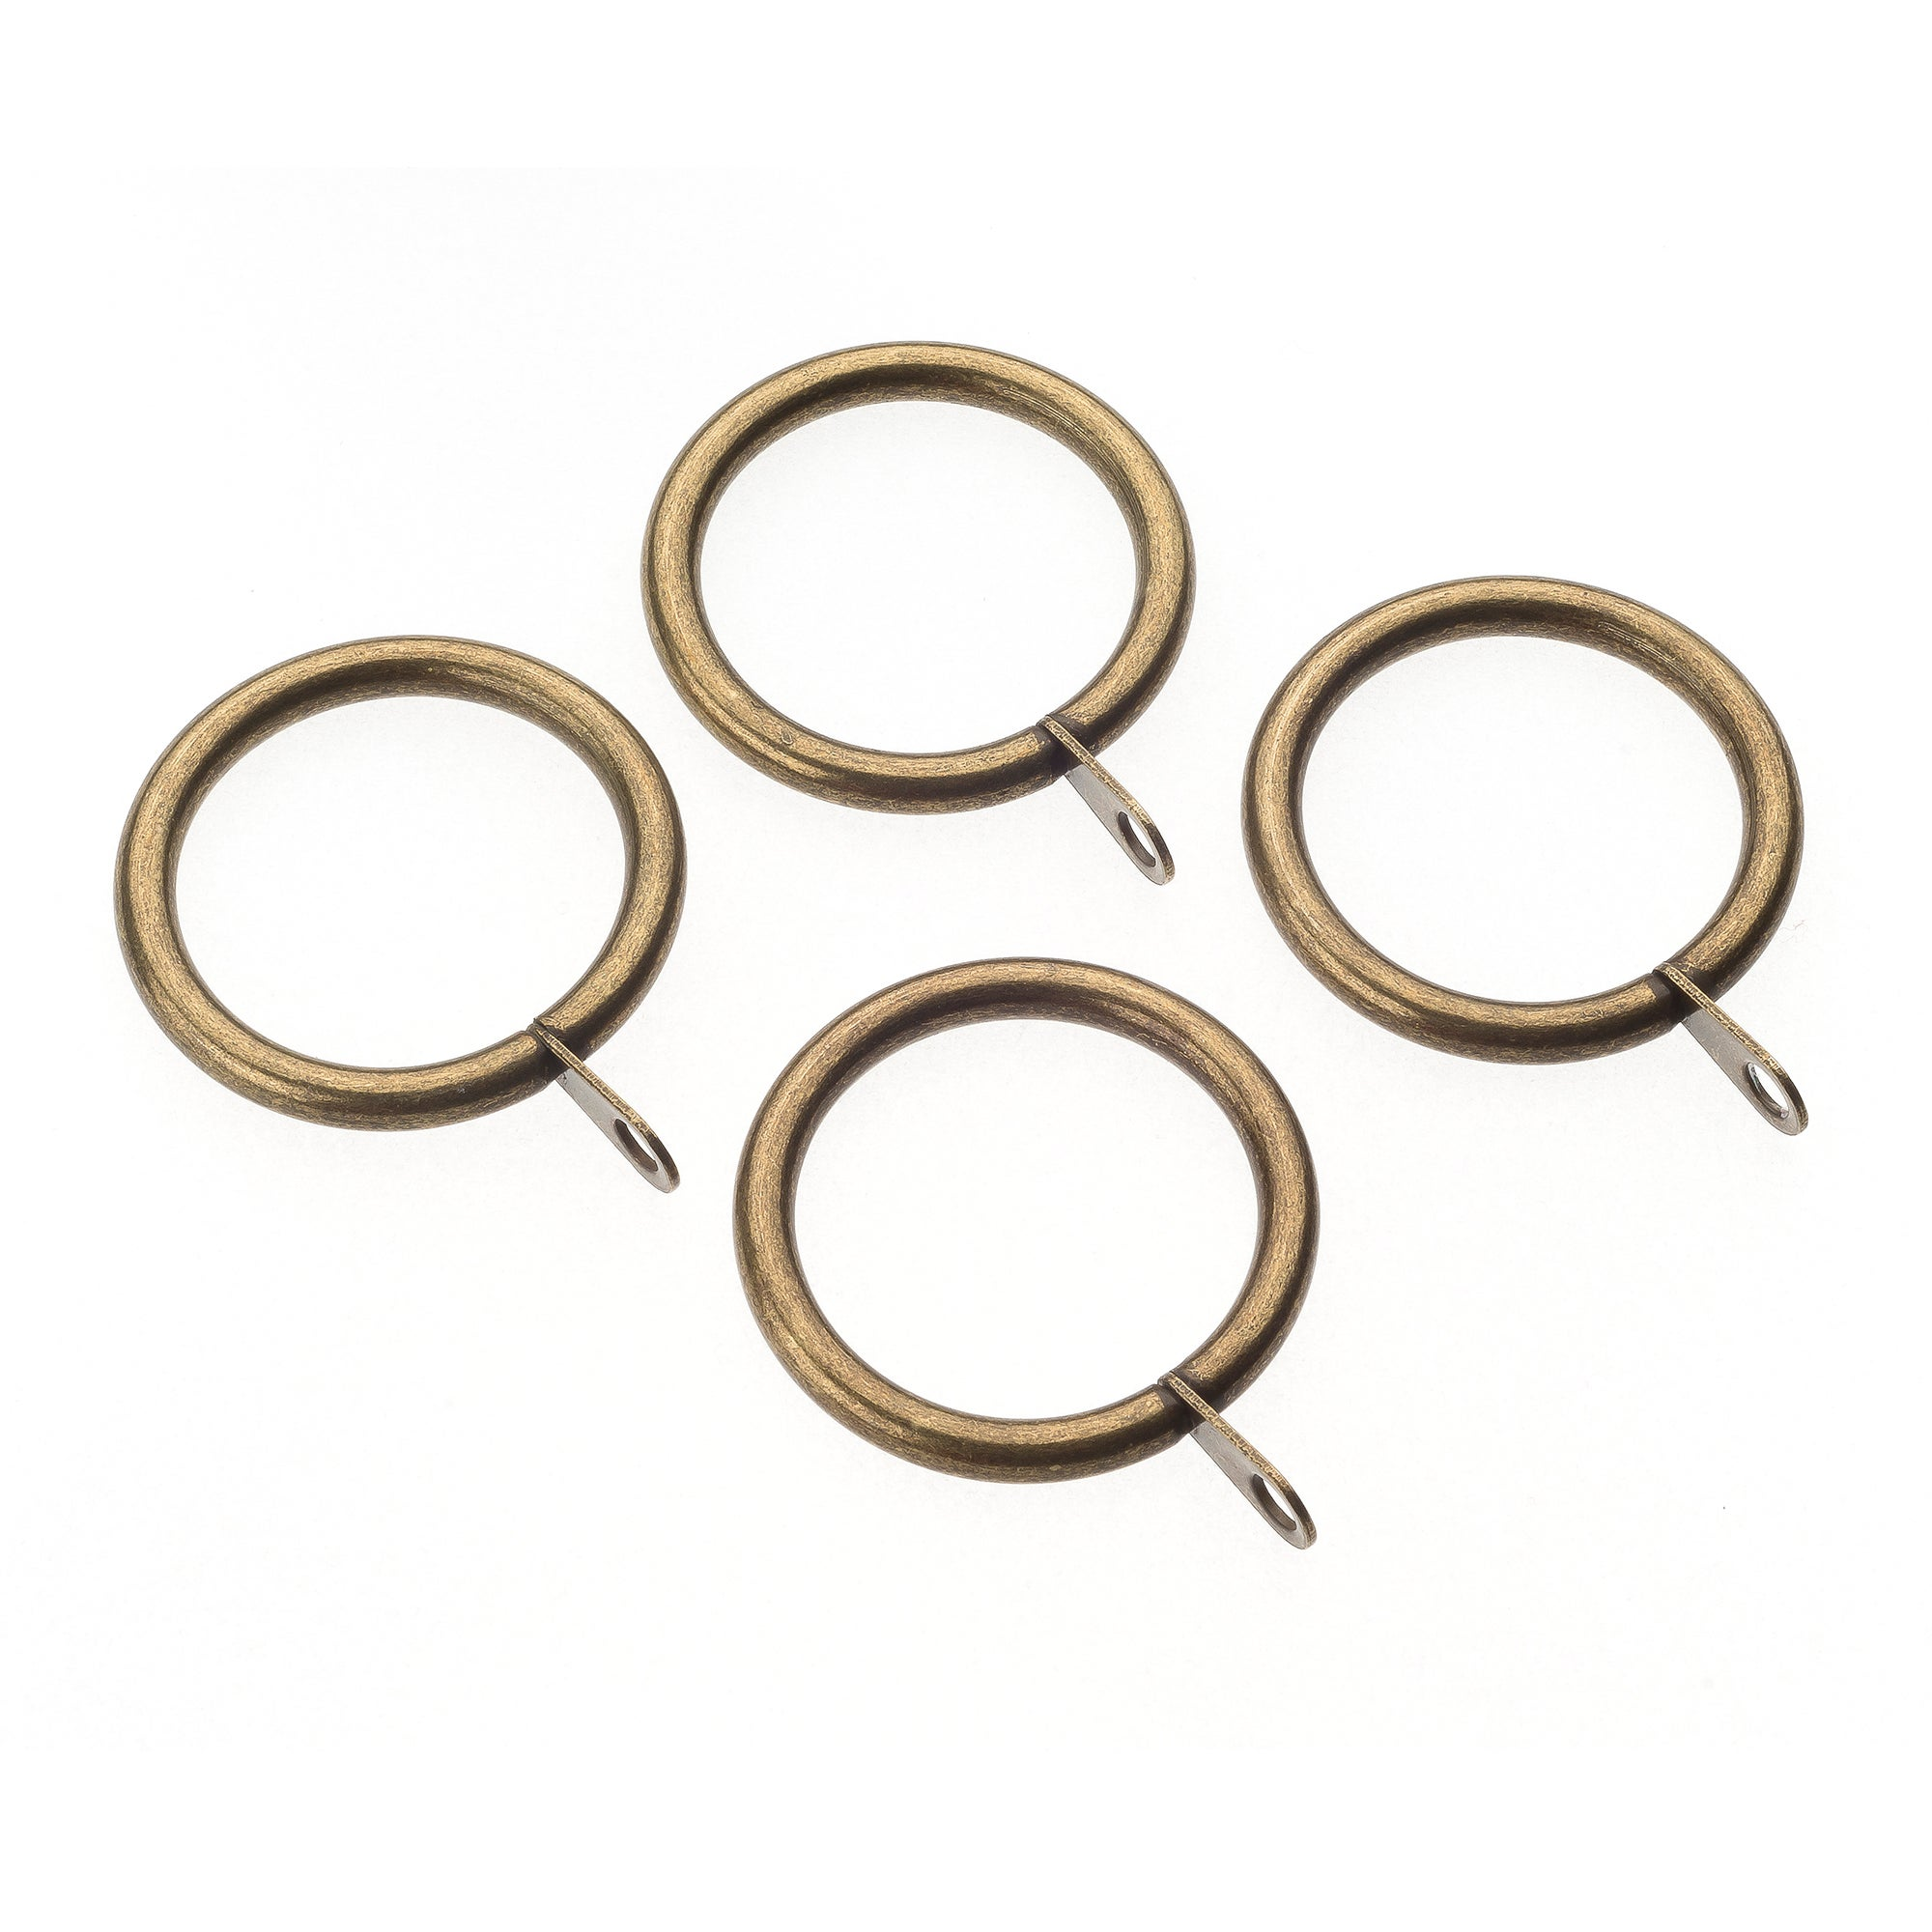 Mix and Match Collection Pack of 4 Antique Brass Curtain Rings